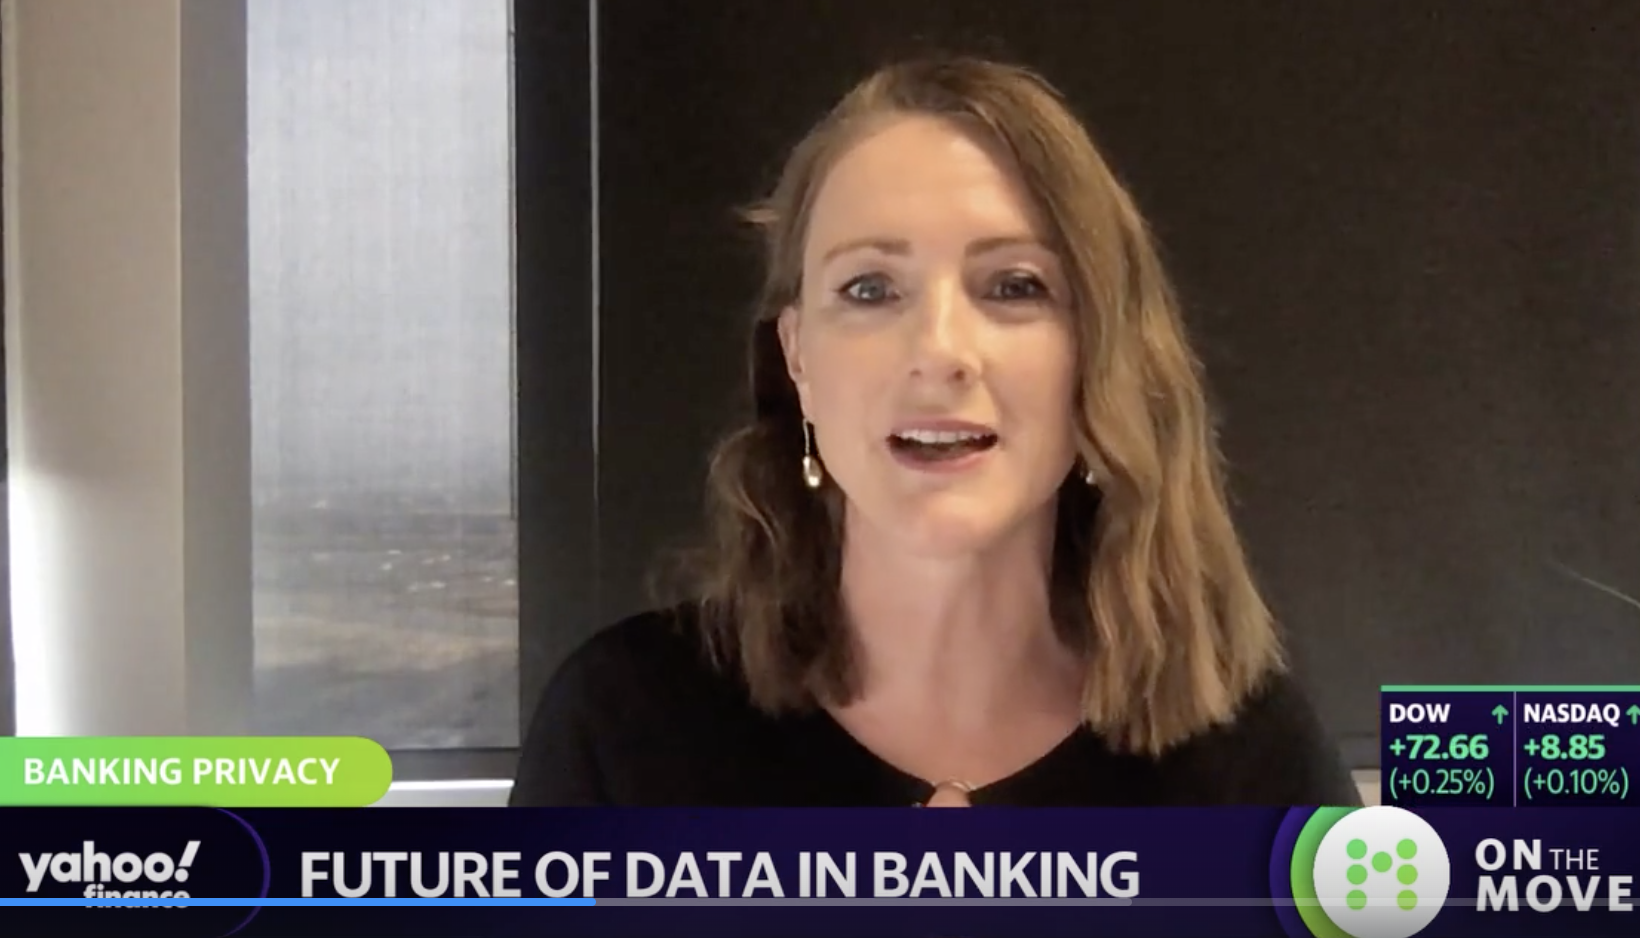 Jane Barratt on Yahoo! Finance 12-27-2019